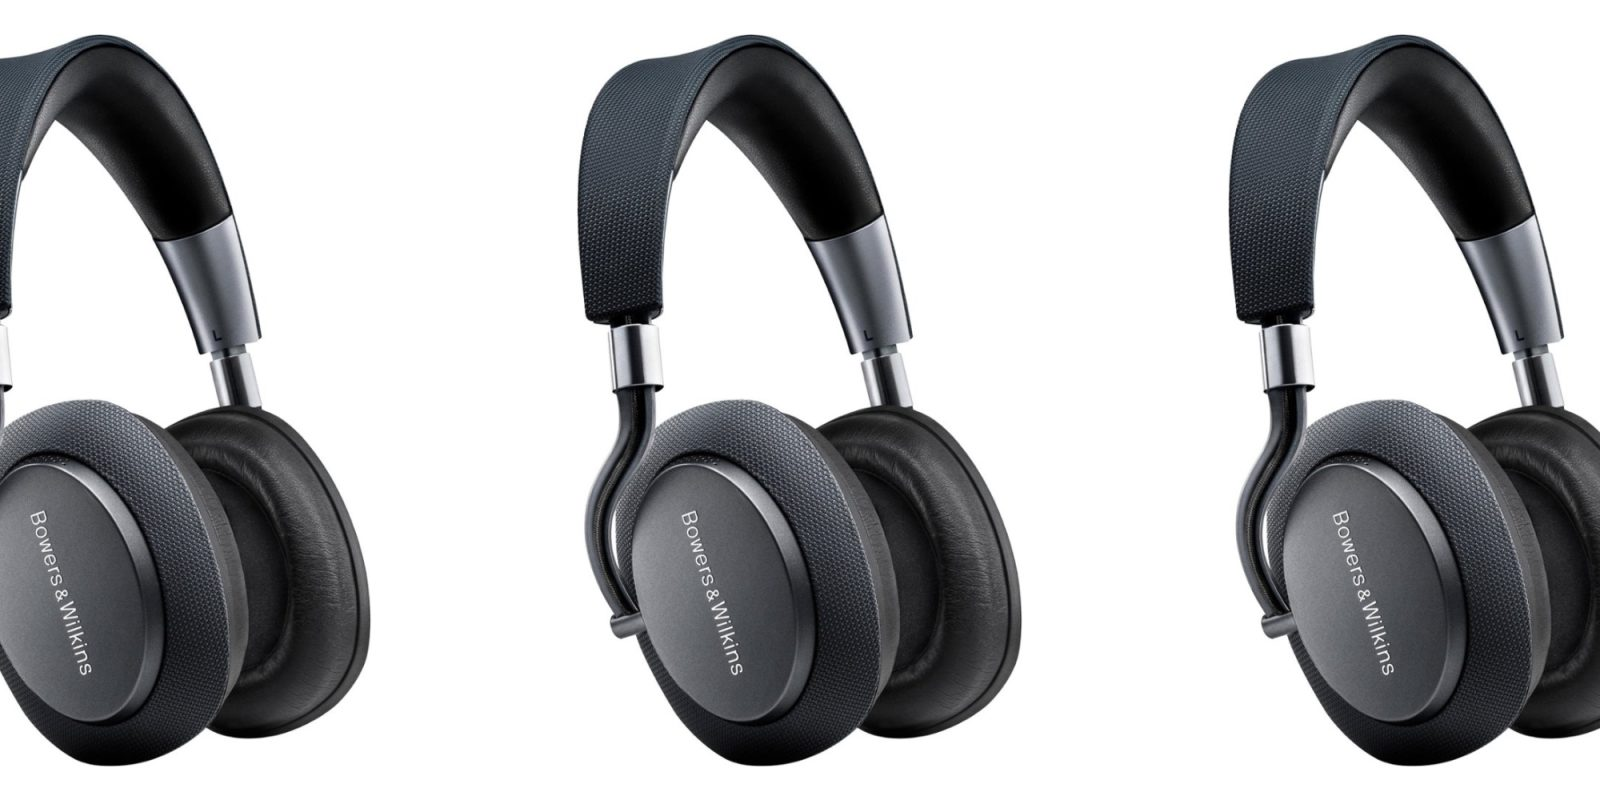 Bowers & Wilkins PX ANC Headphones drop to Amazon low: $280 (Reg. up to $400)